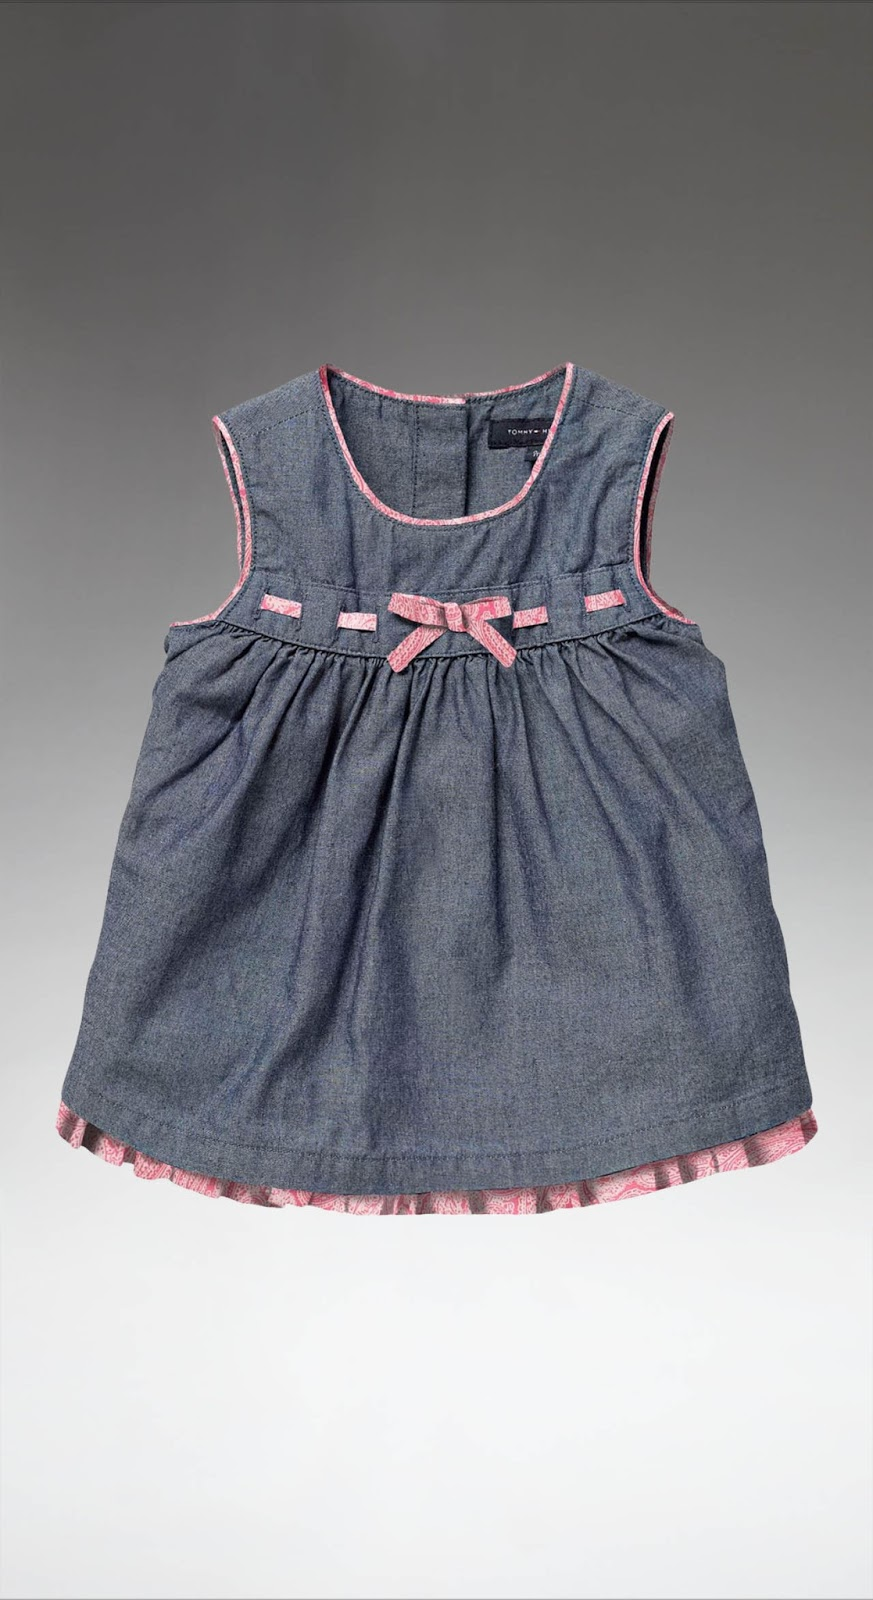 Purple Doughnuts Tommy Hilfiger Baby Girl Chambray Dress In 0 6